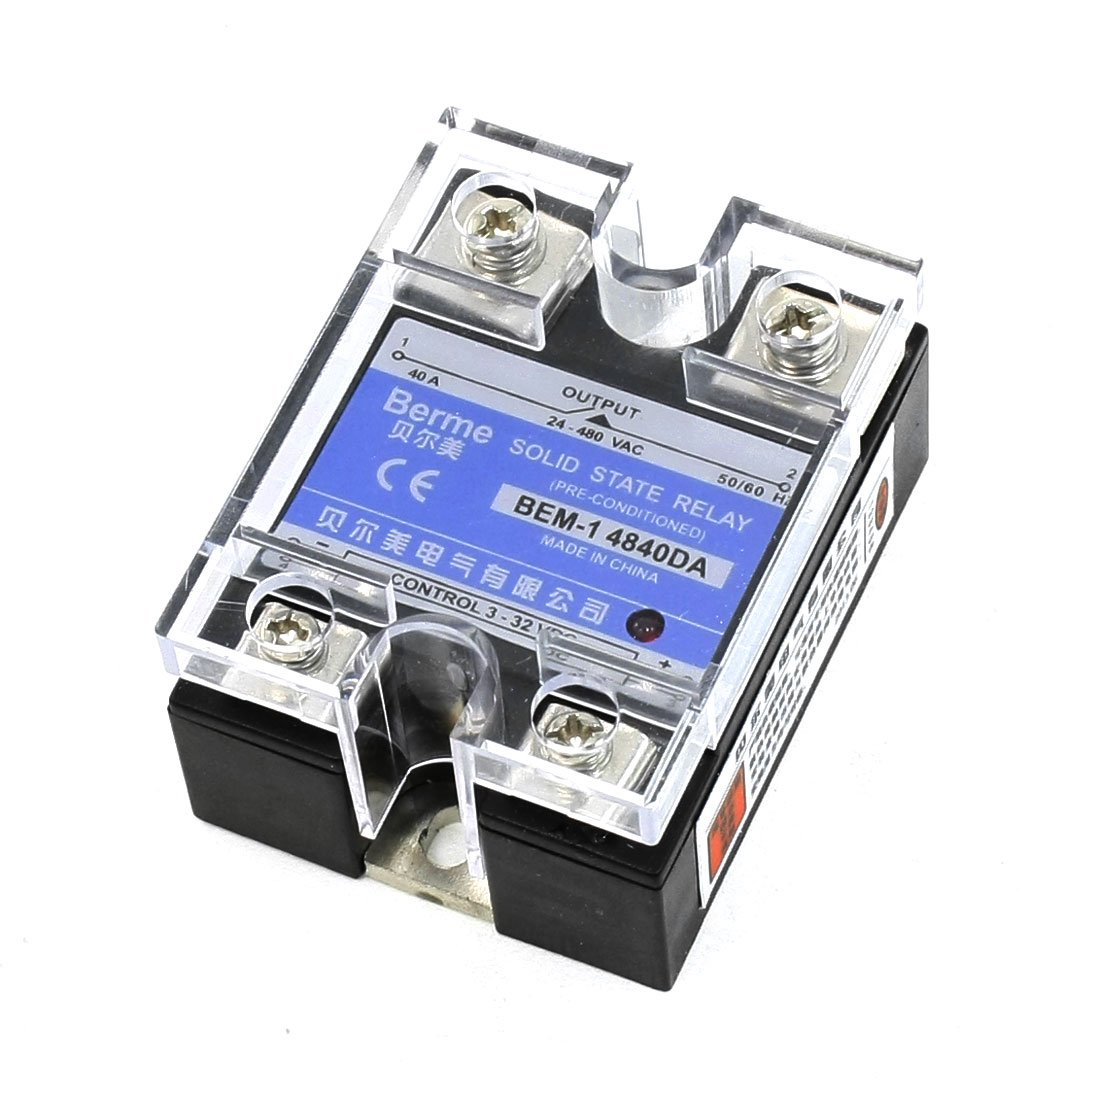 IMC Hot 24-480V AC DC to 3-32VDC Output Single Phase SSR Solid State Relay 40A mgr 1 d4825 single phase solid state relay ssr 25a dc 3 32v ac 24 480v